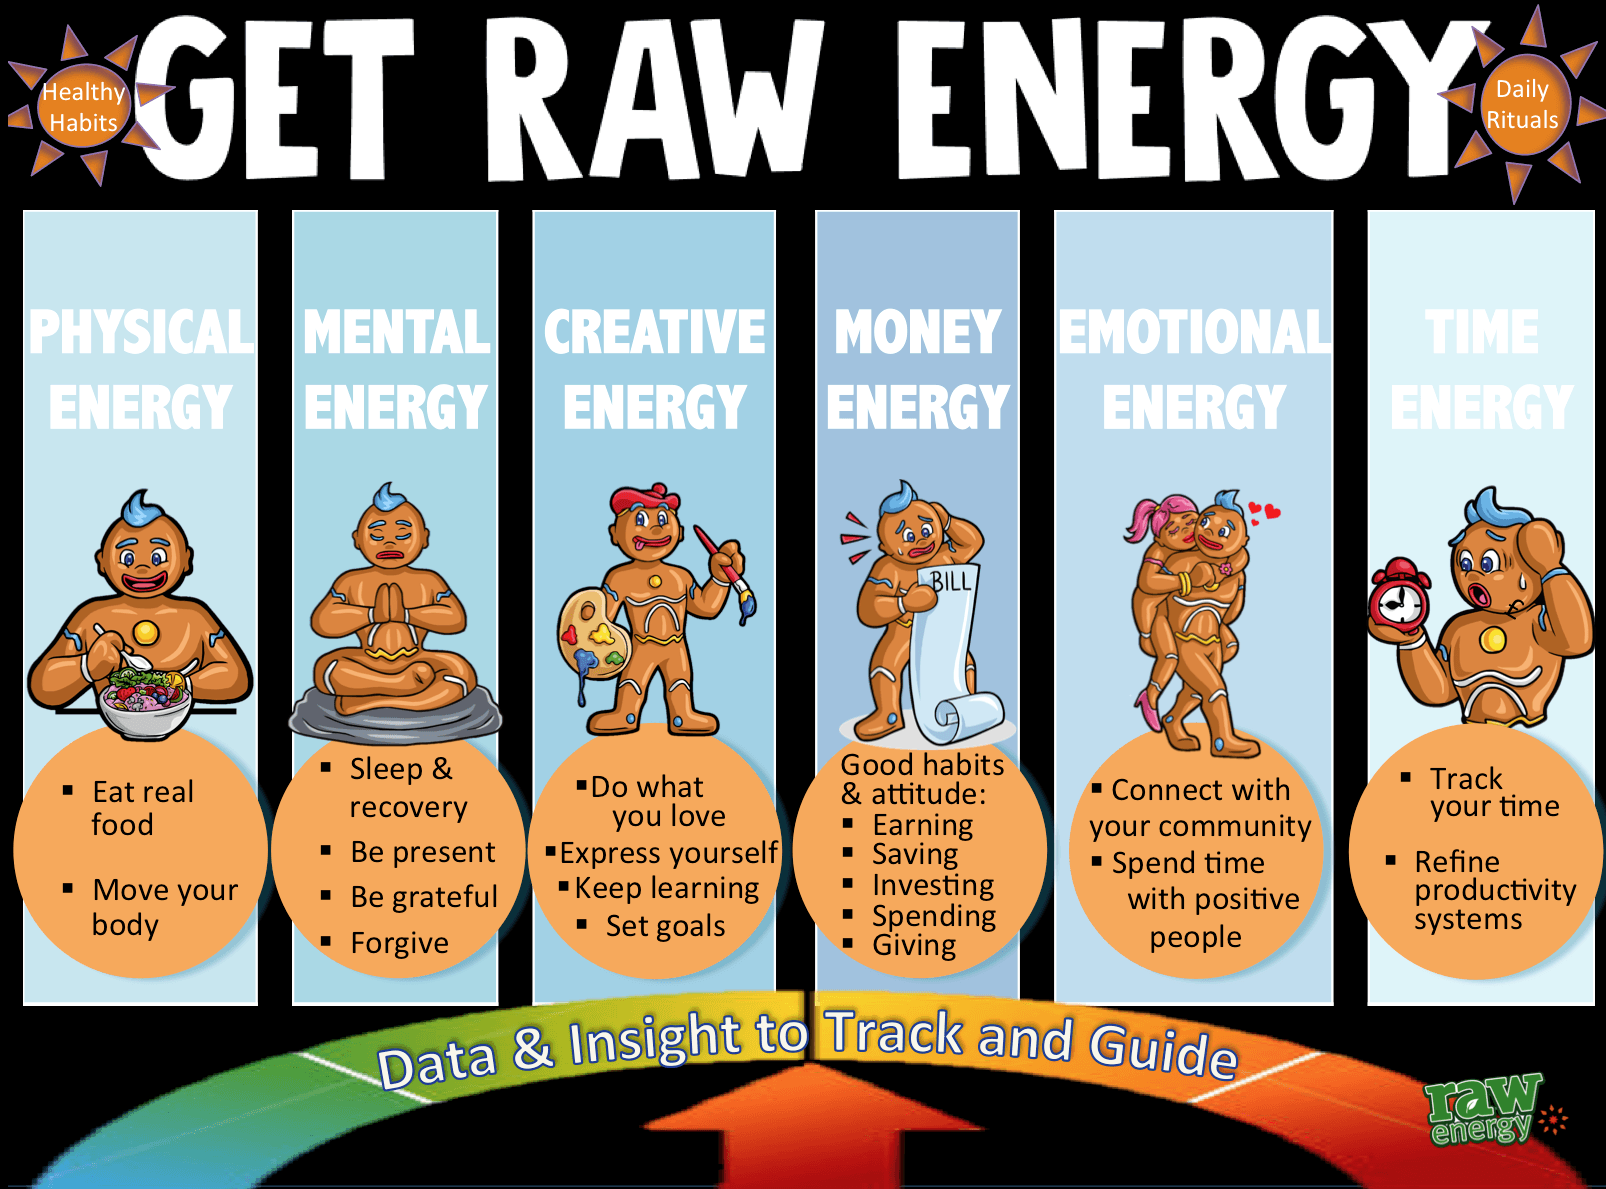 HOW TO GET RAW ENERGY - Raw Energy